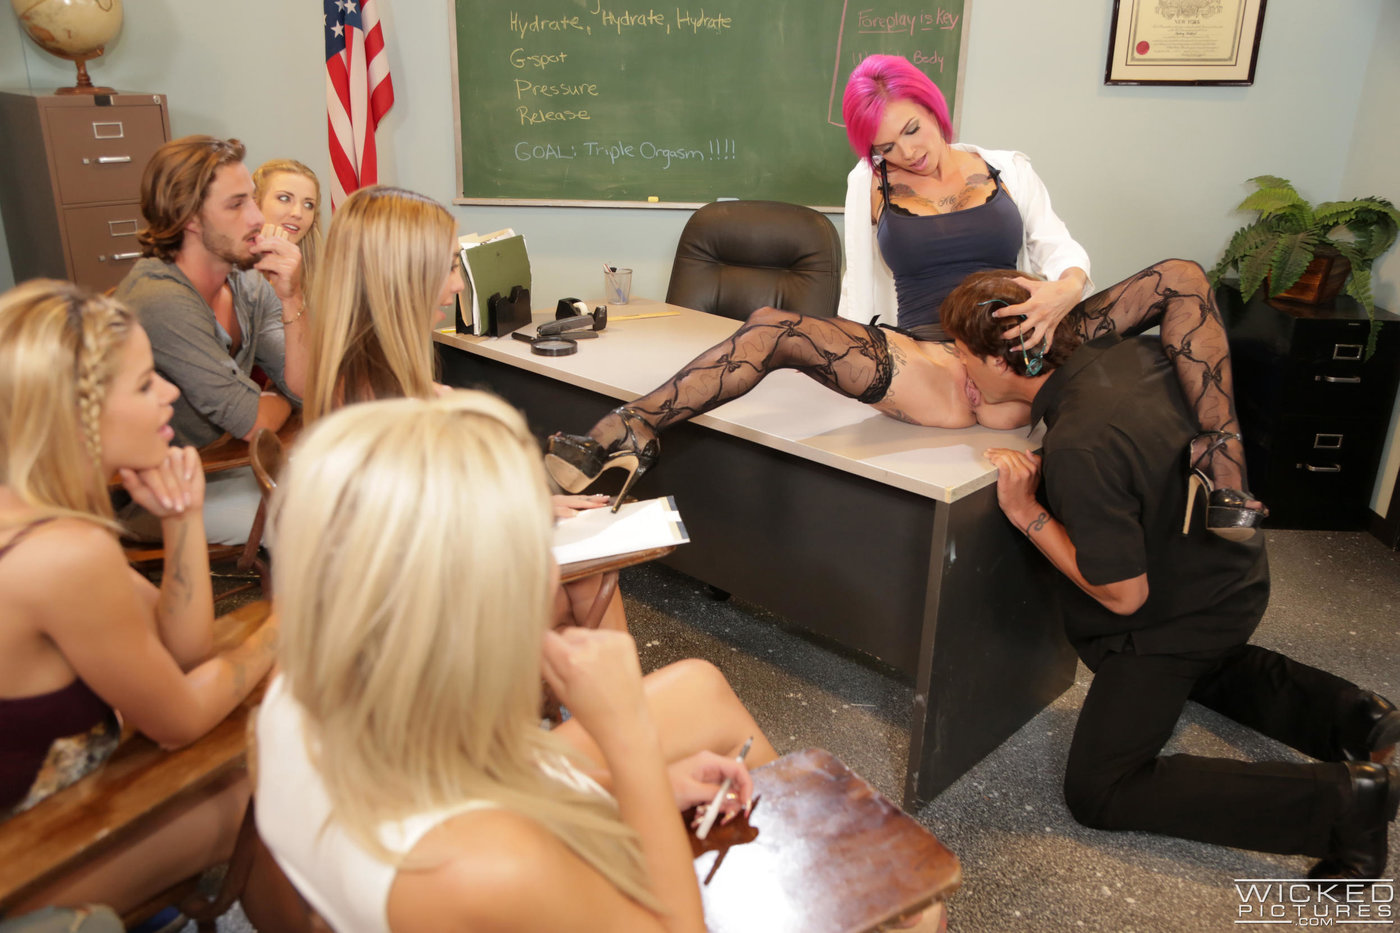 Pink-haired and stockings-clad teacher getting pounded in the class room